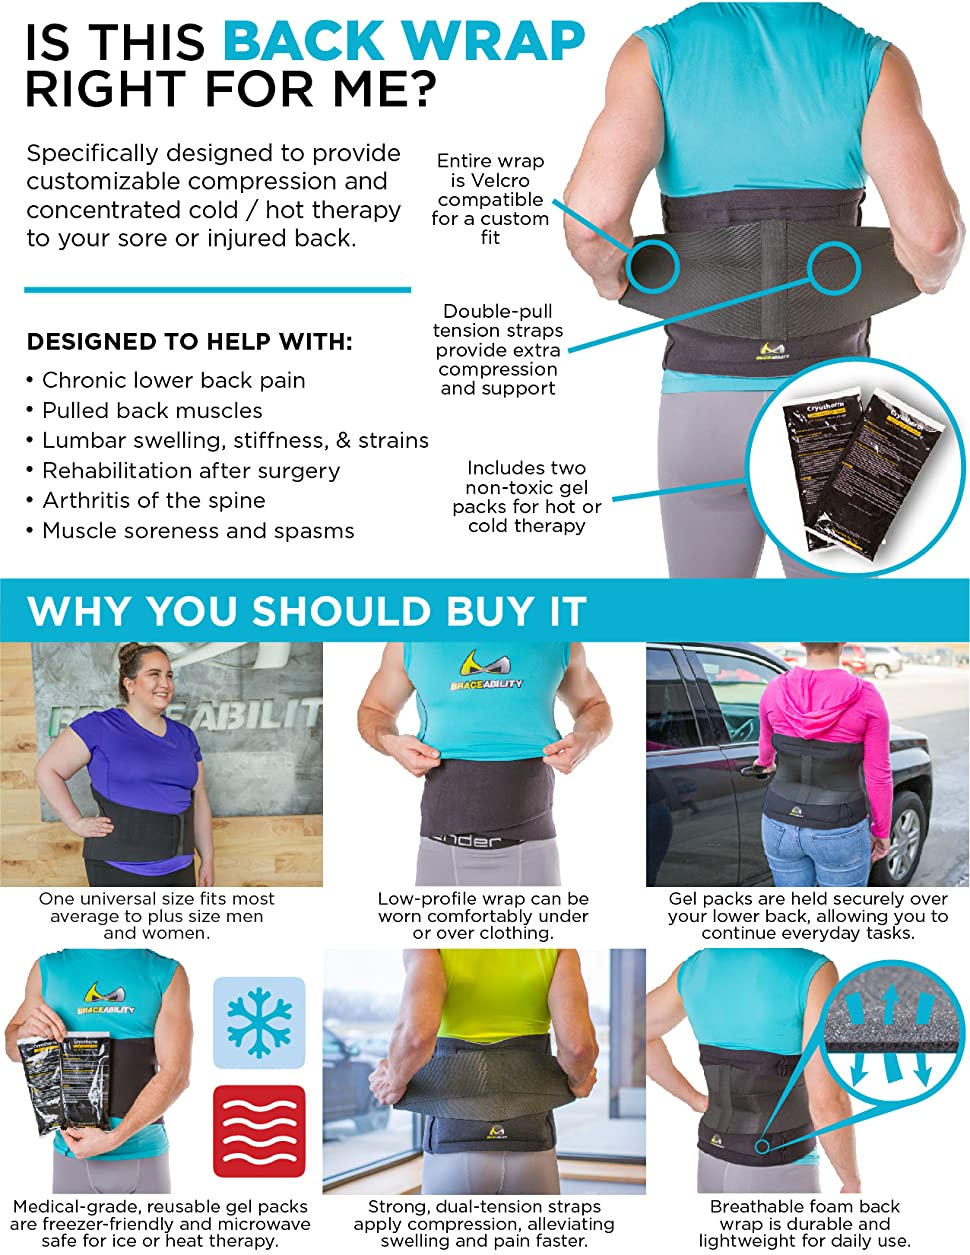 06d4198c60540 This back brace with therapy gel packs makes it easier to apply cold or  heat therapy and compression to the low-back